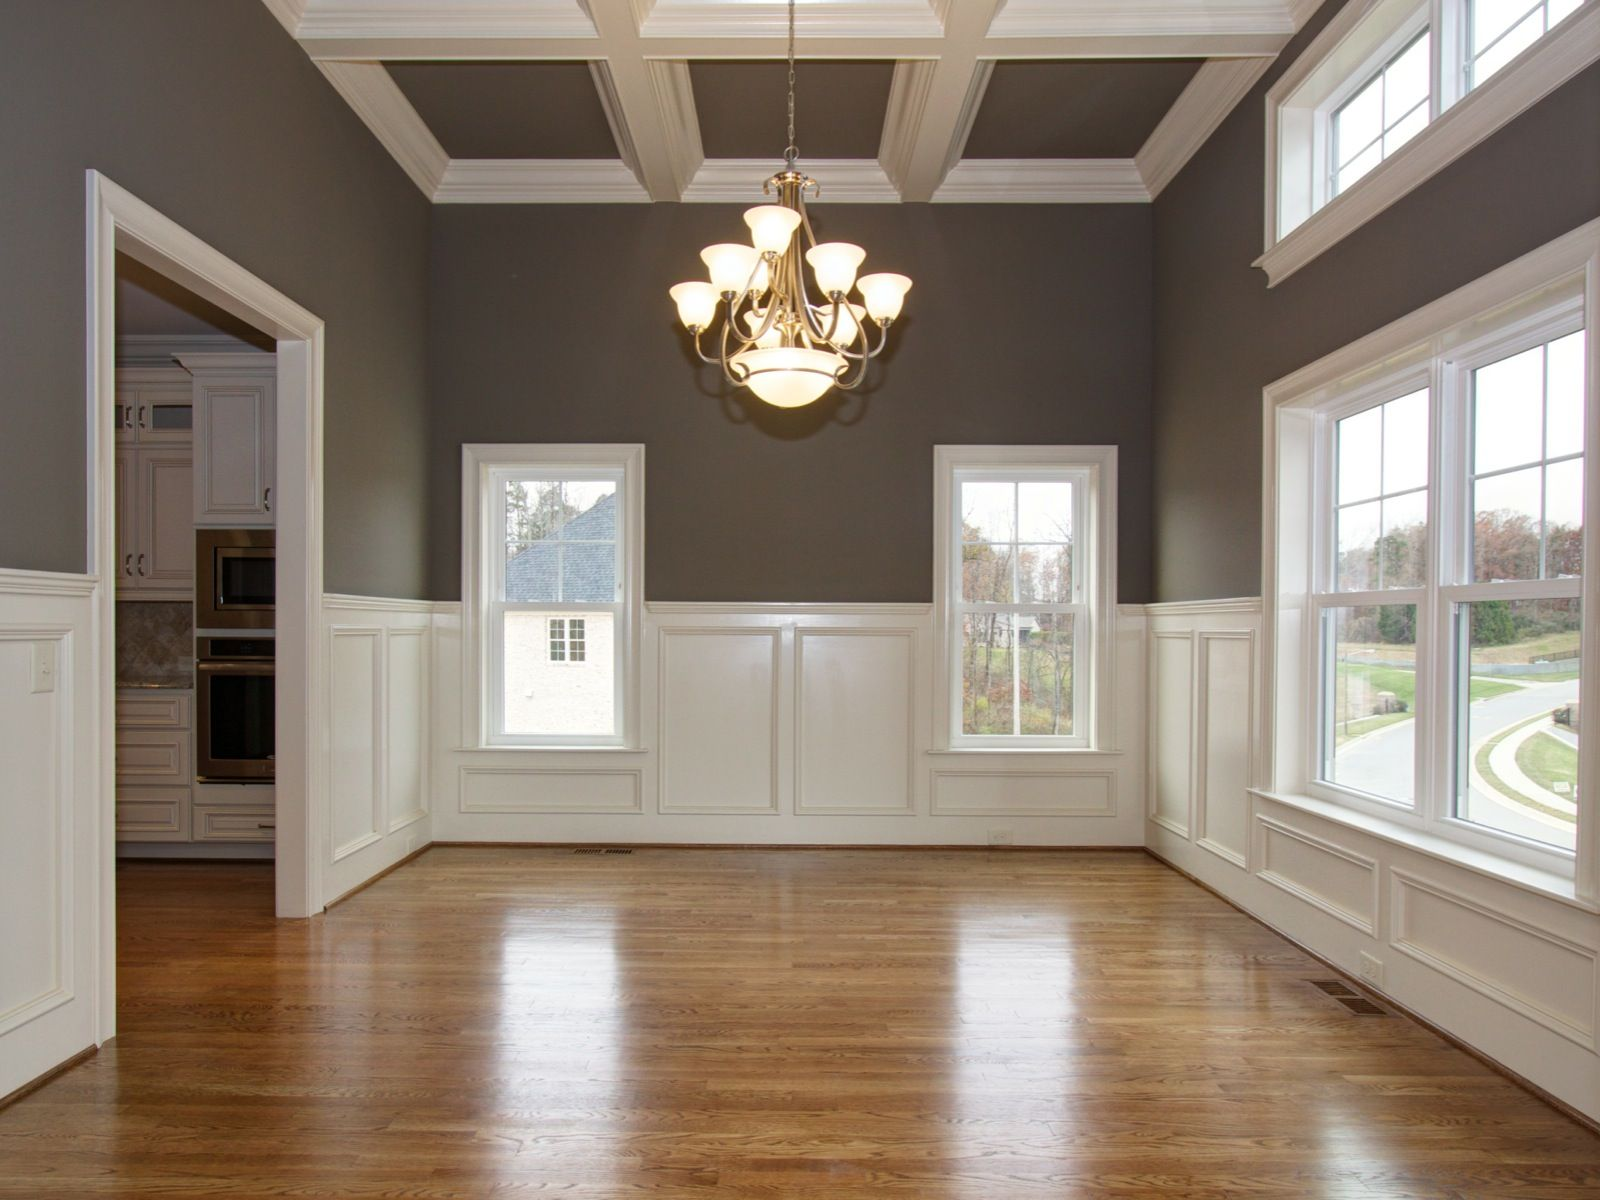 Good Chair Rail 9 Ft Ceiling Part - 12: These 9ft Ceilings Will Really Make You Work Up An Appetite For A New Home!